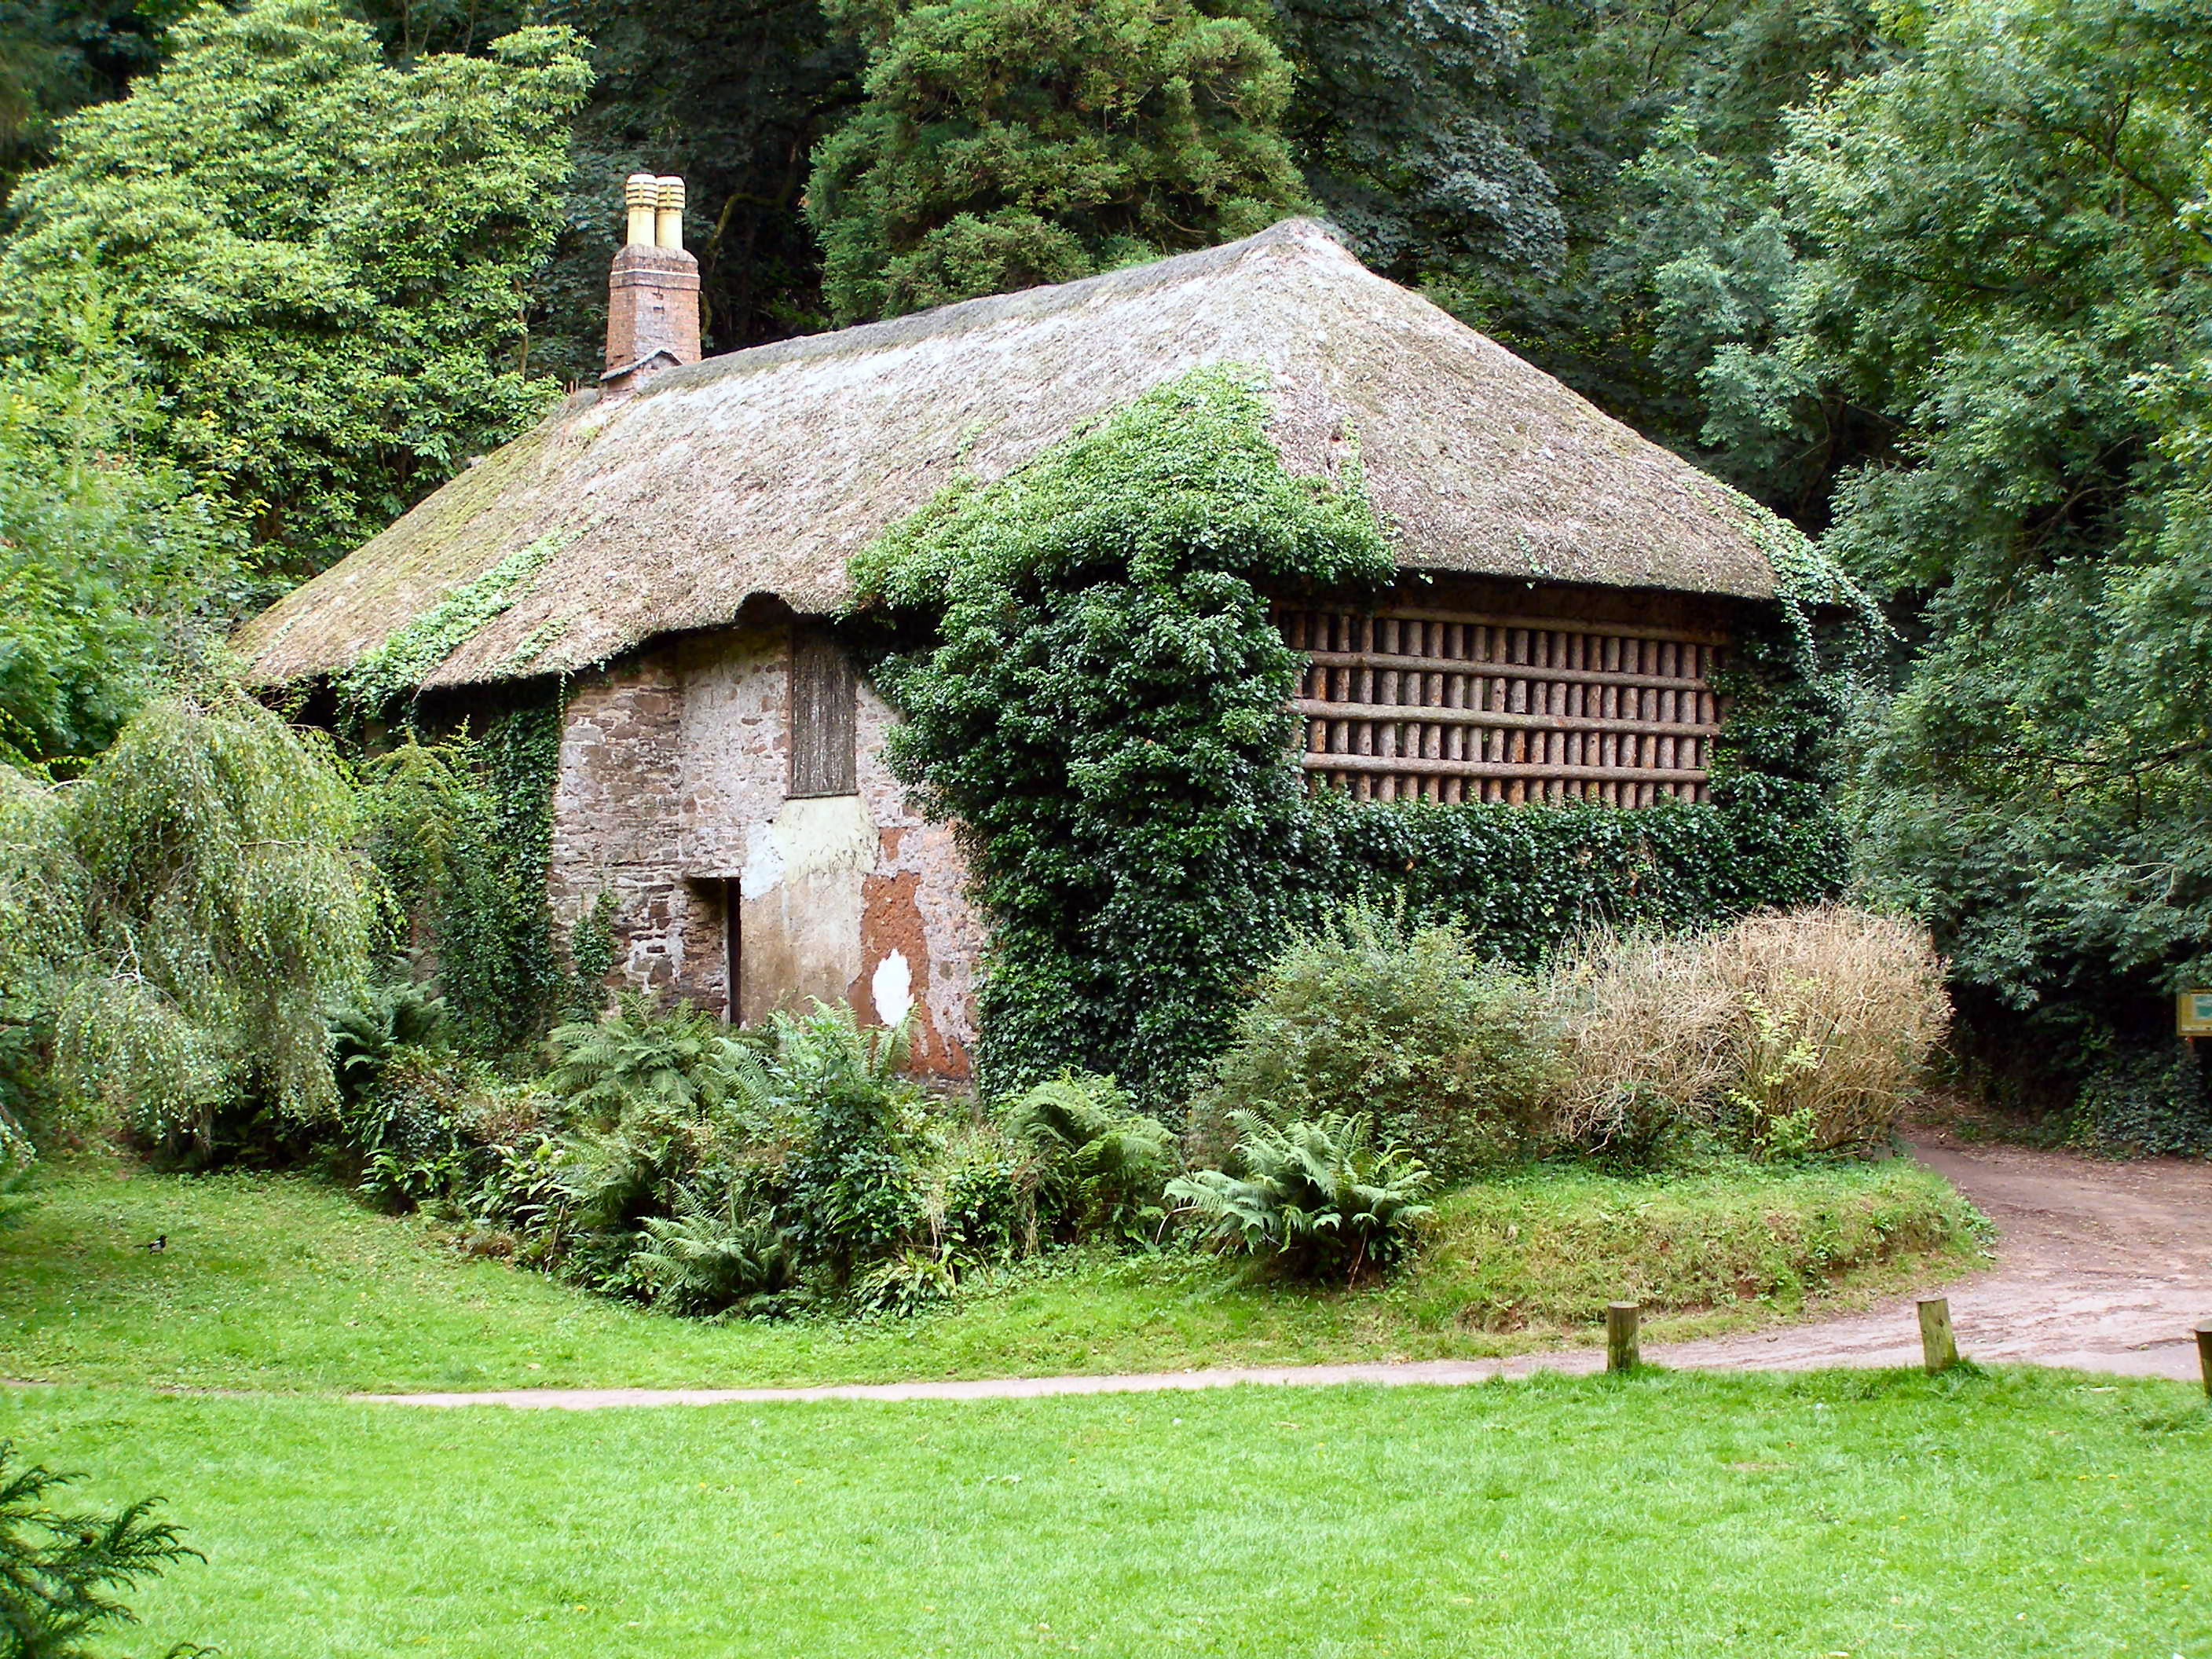 file gamekeeper 39 s cottage manscombe woods wikimedia commons. Black Bedroom Furniture Sets. Home Design Ideas